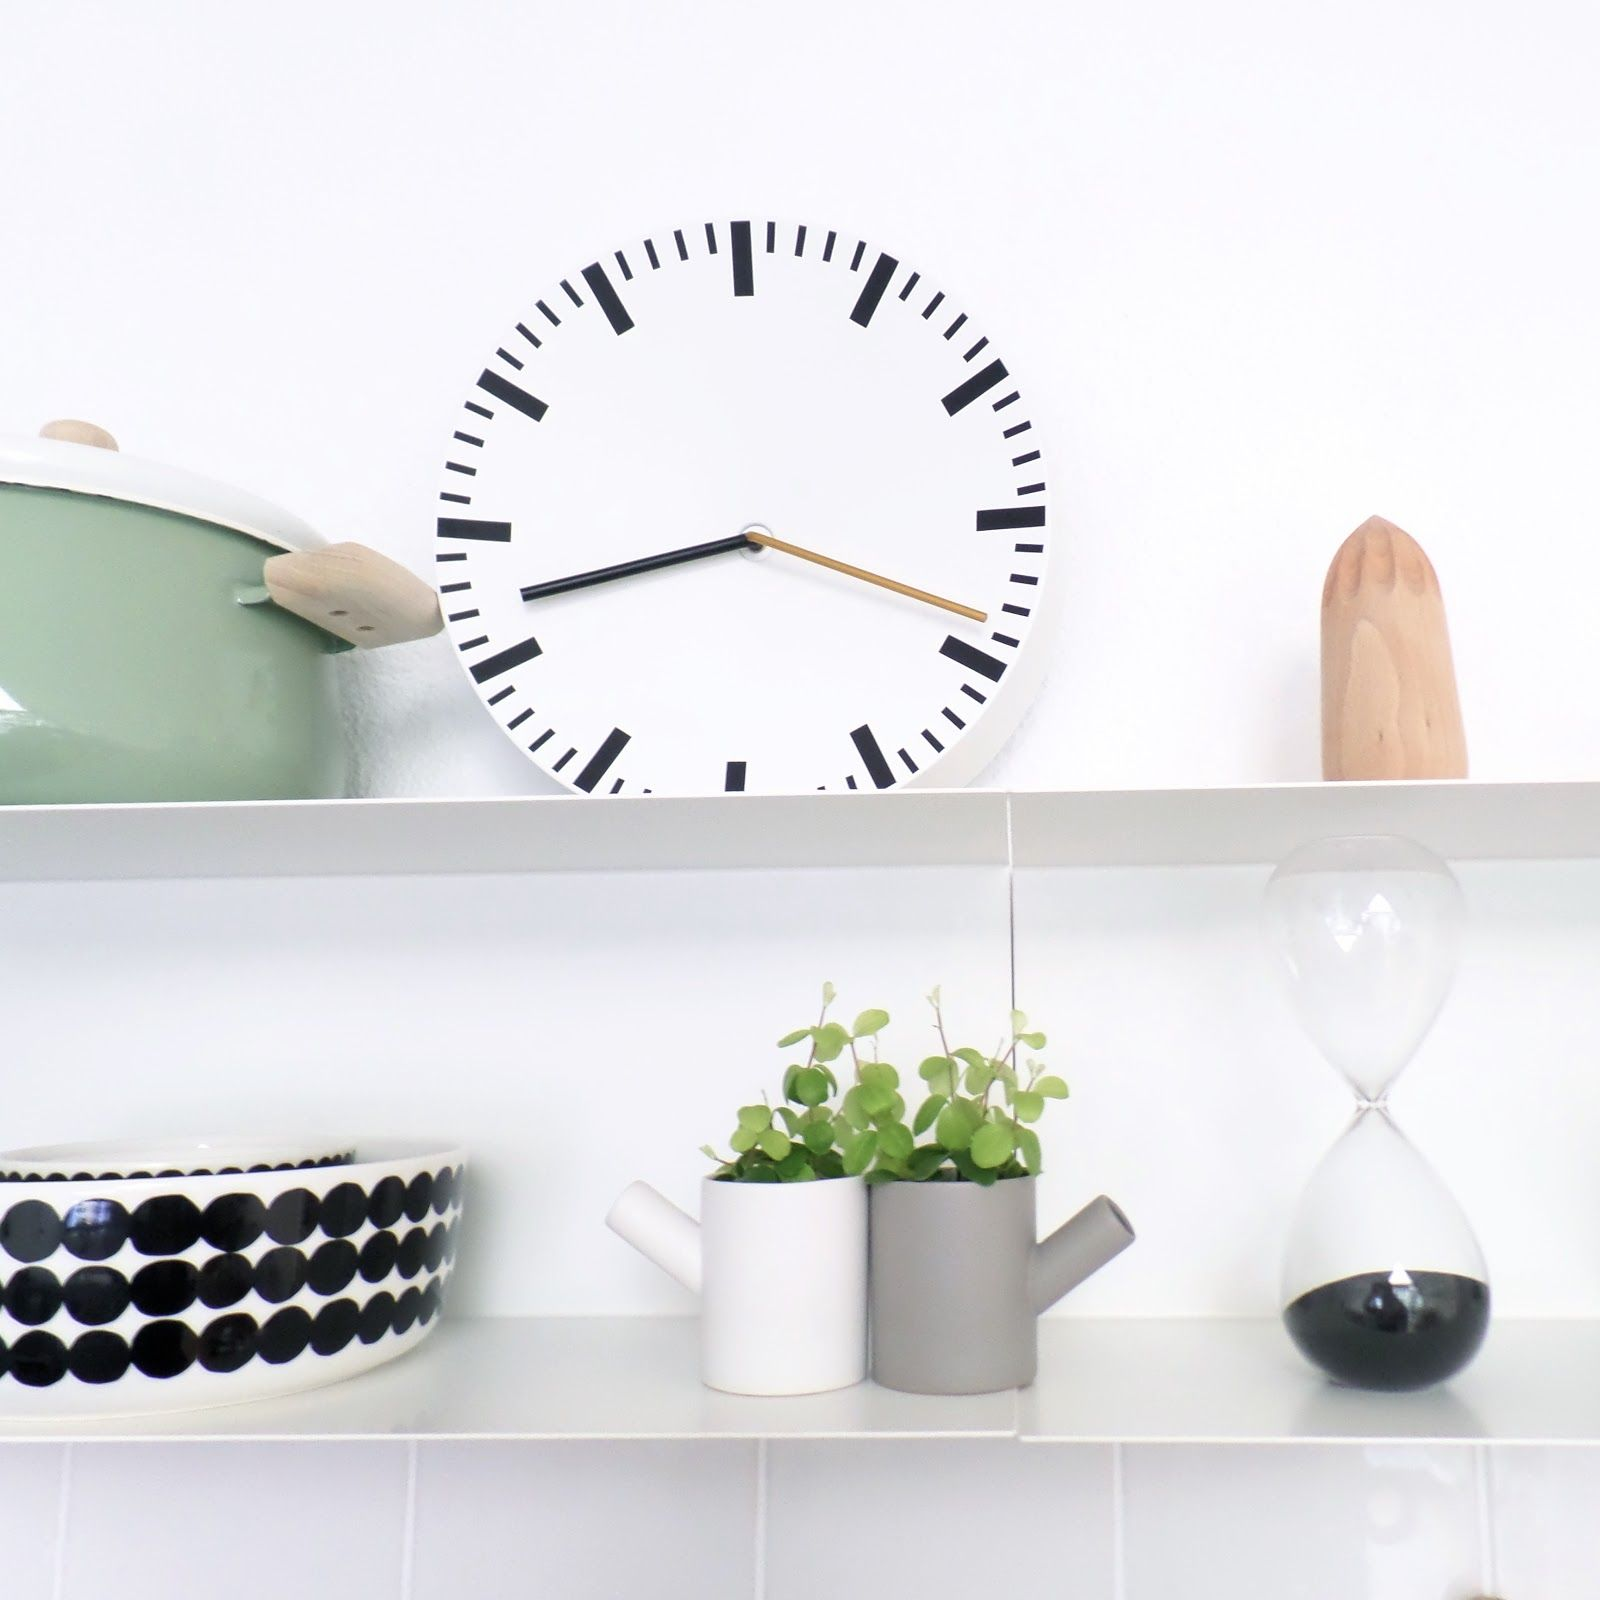 Hay Analog Clock In The Home Of Blogger Nordic Days Nordic Interior Design Clock Analog Clock